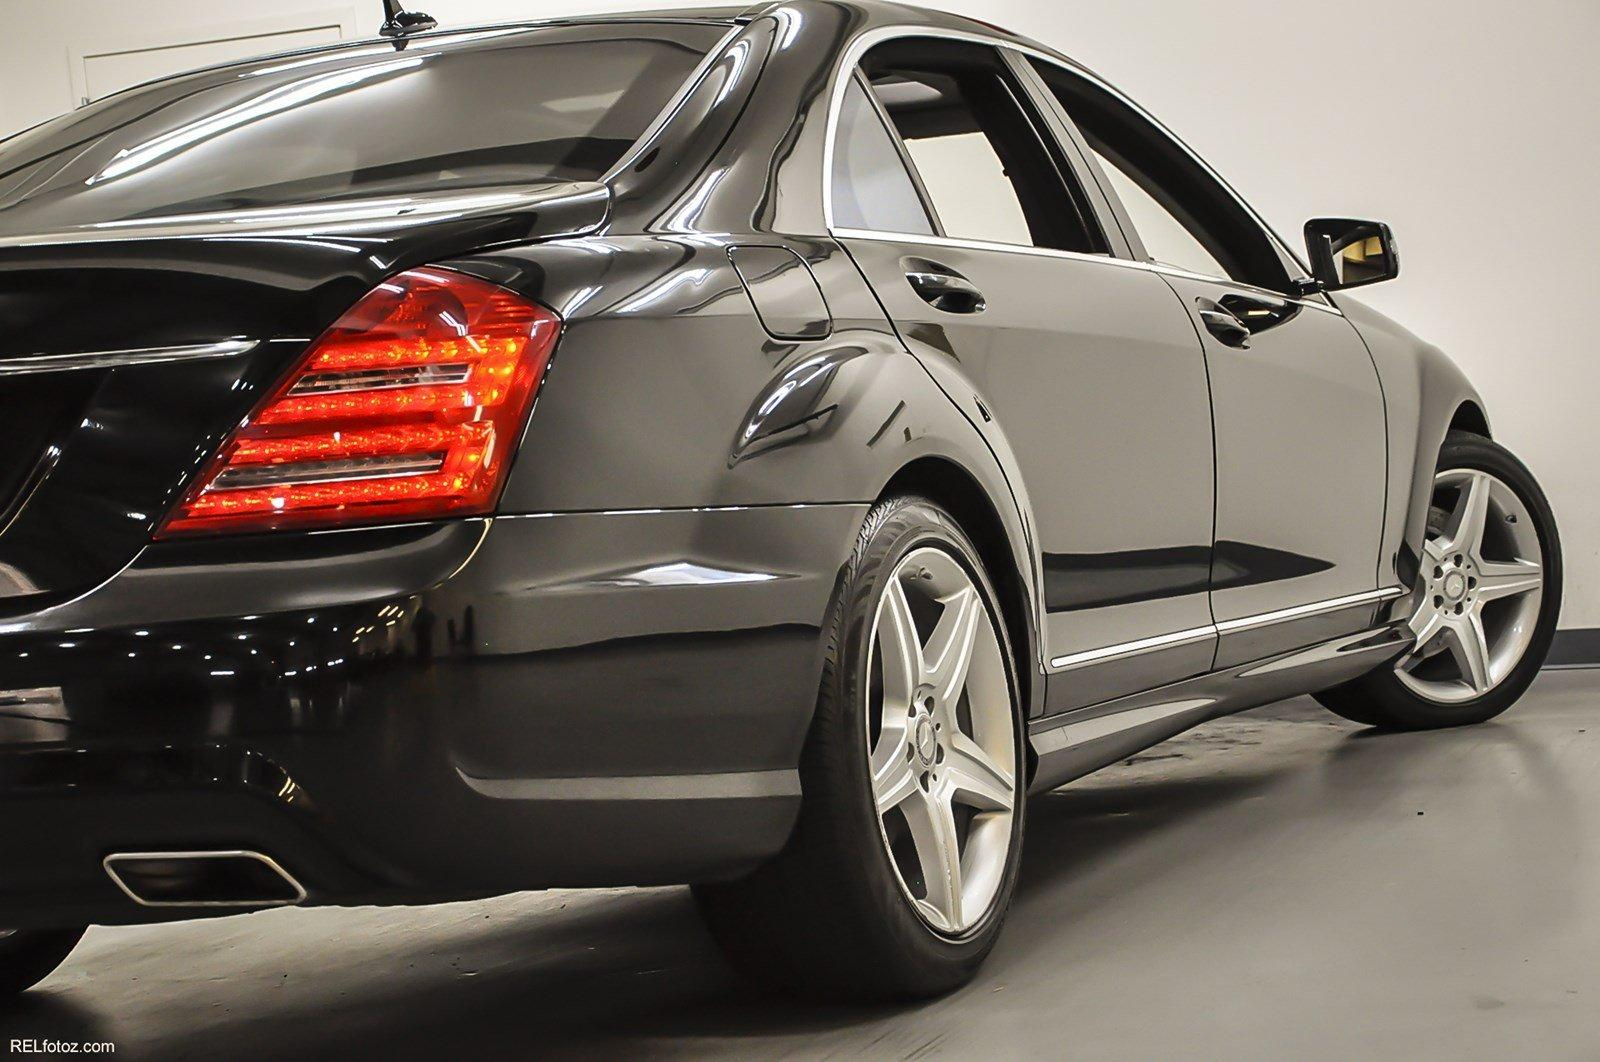 All Types 2010 s class : 2010 Mercedes-Benz S-Class S 550 Stock # 291637 for sale near ...